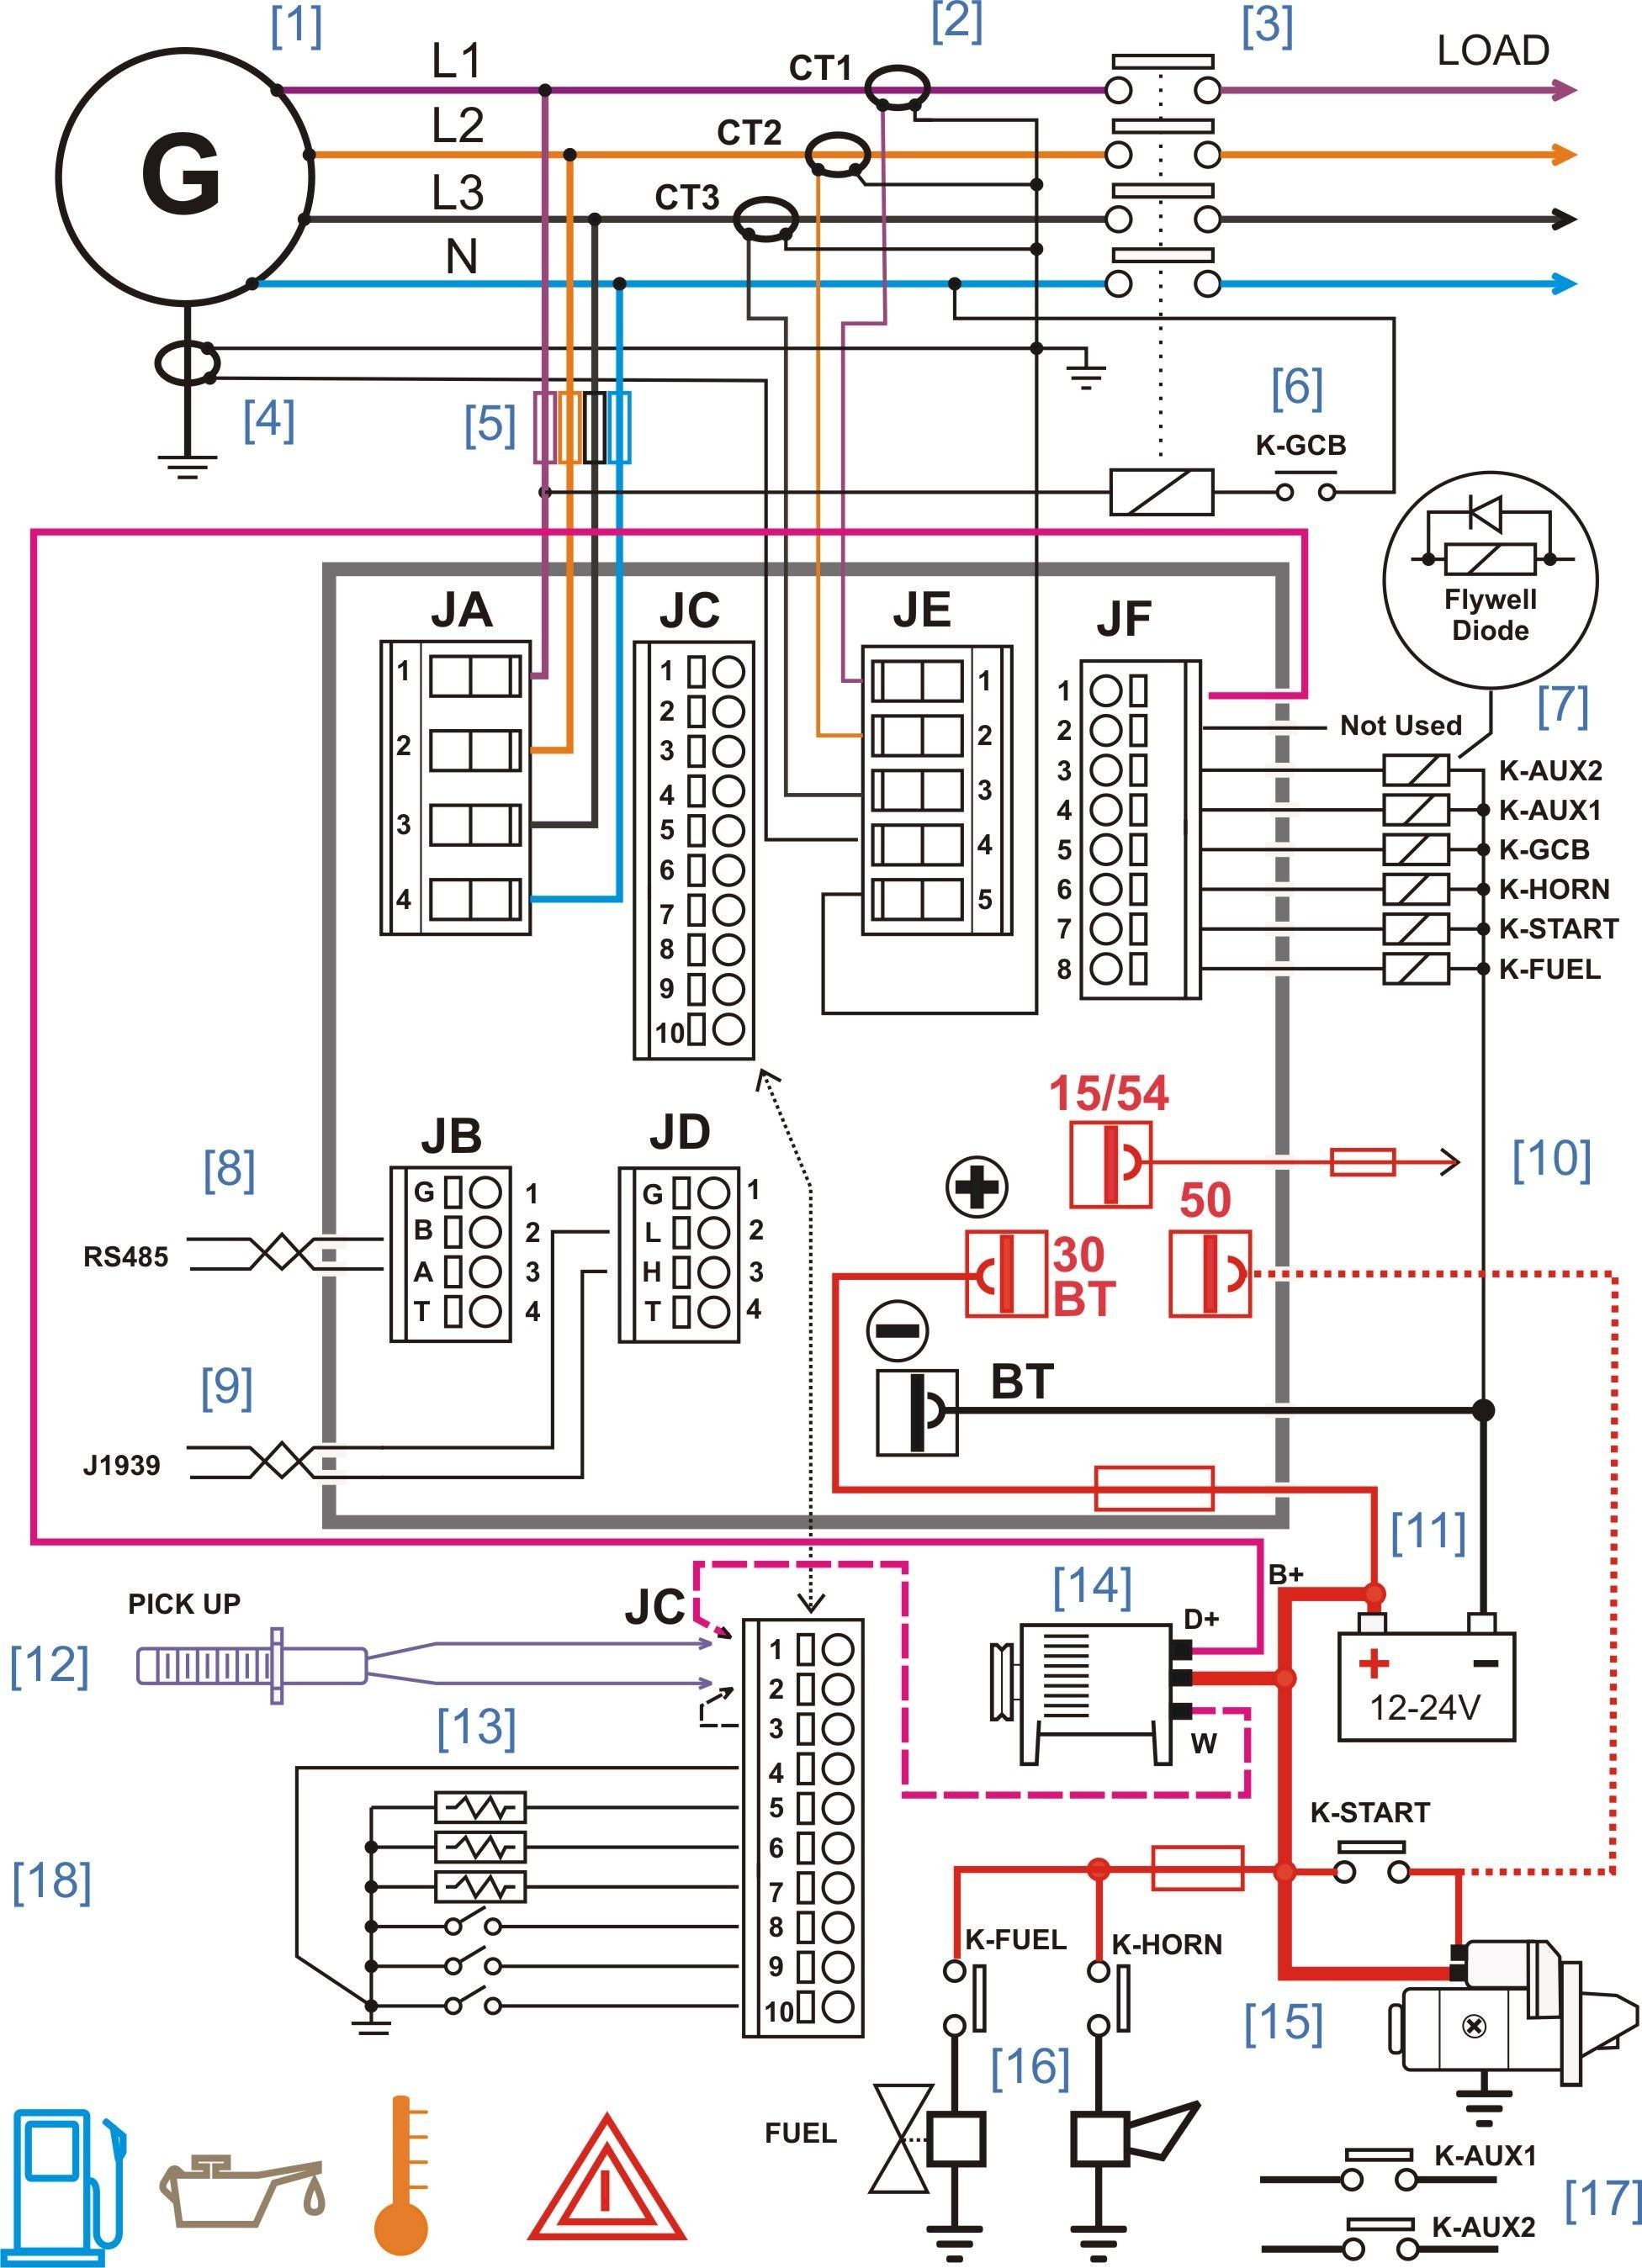 Heat Trace Wiring Diagram Page 4 And Schematics For Trane Xe1000 Sel Generator Control Panel Of S